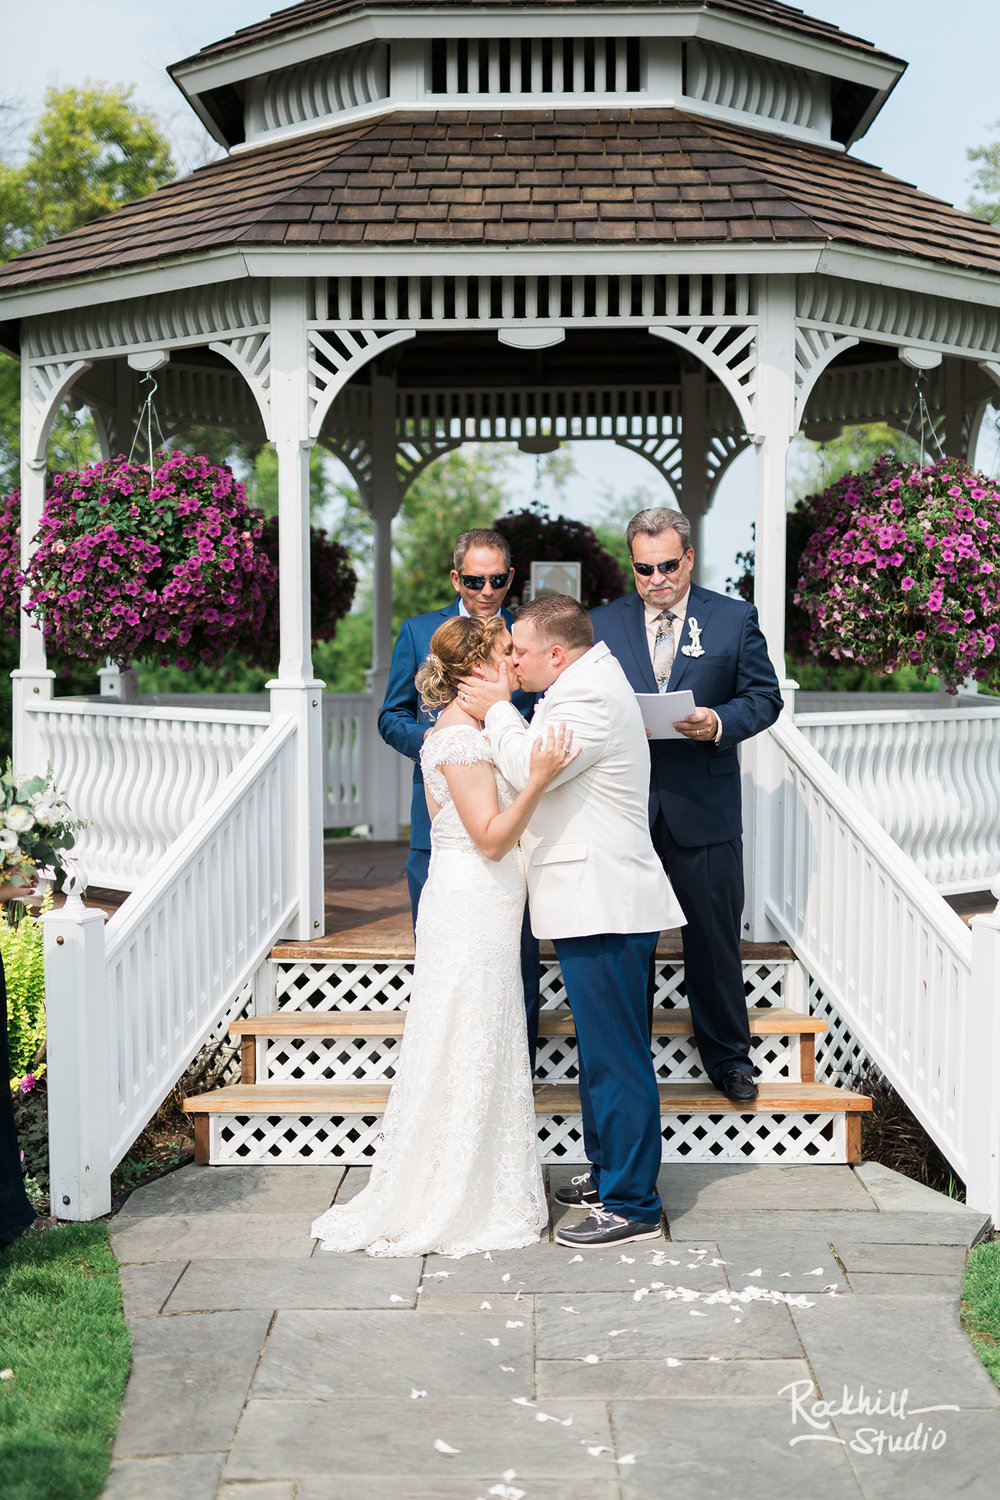 Mission Point Wedding, gazebo, Traverse City Wedding Photographer Rockhill Studio